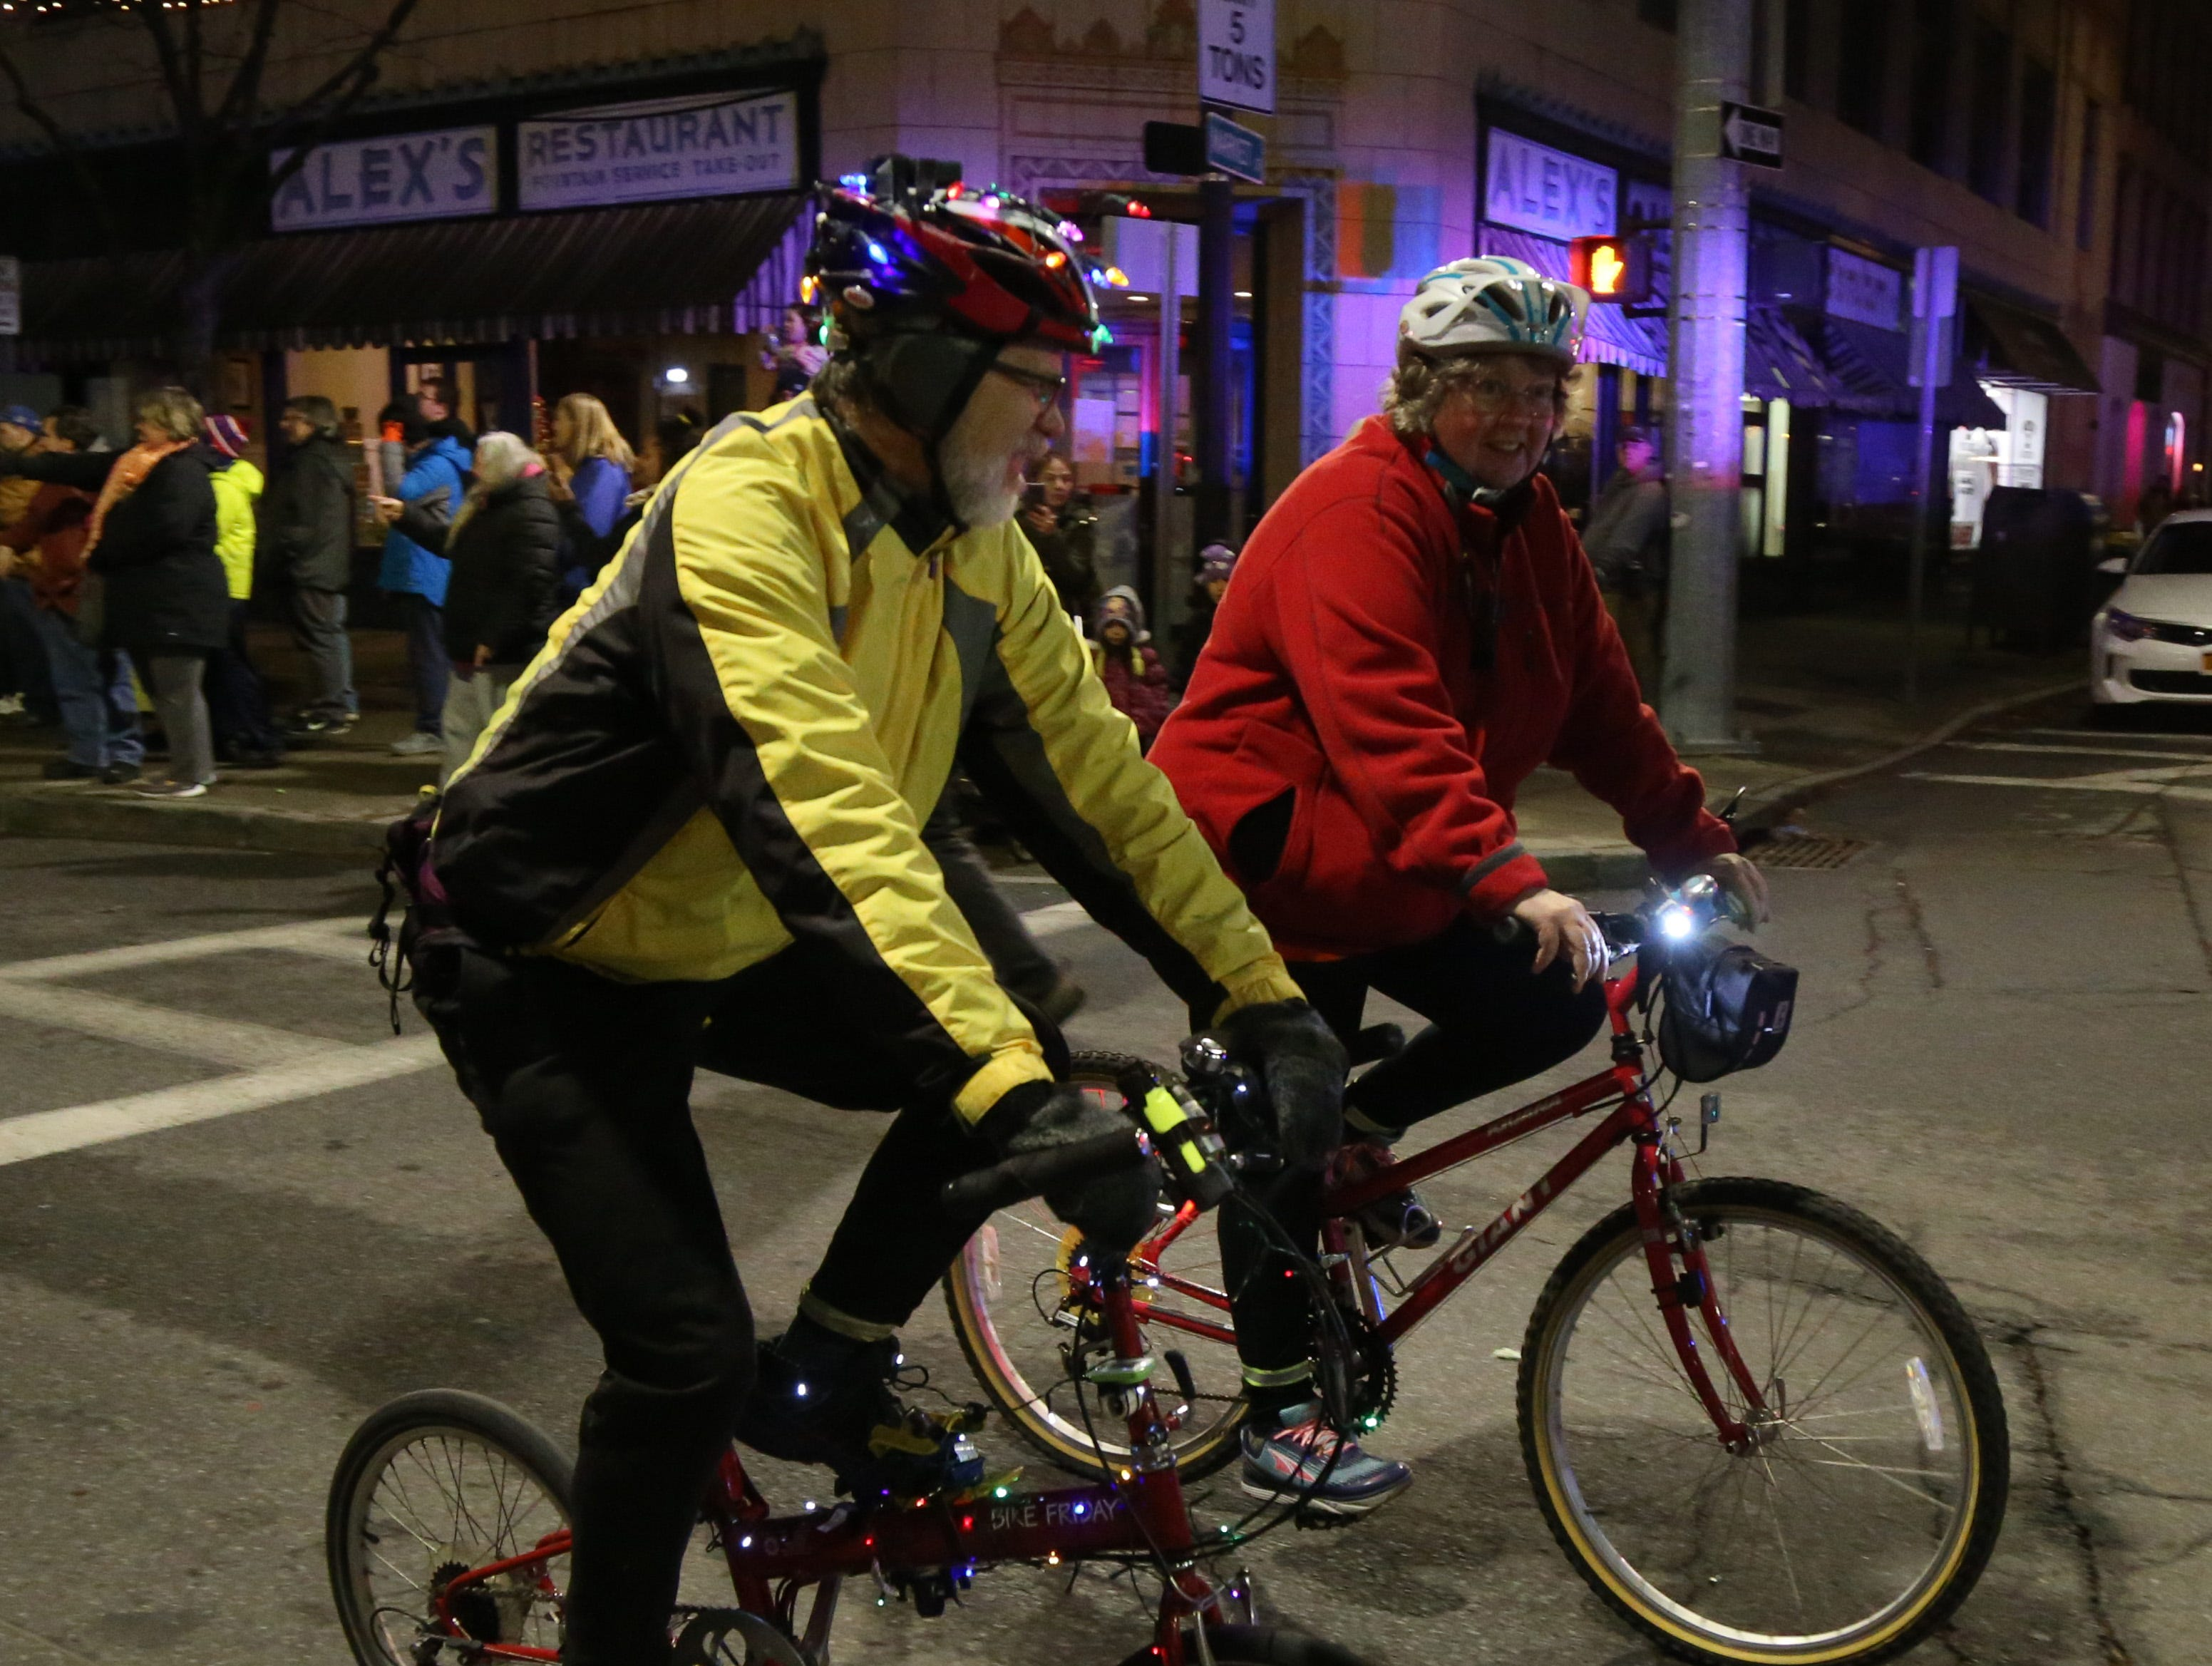 Members of Fats in the Cats Bicycle Club in  the Celebration of Lights Parade in the City of Poughkeepsie on November 30, 2018.